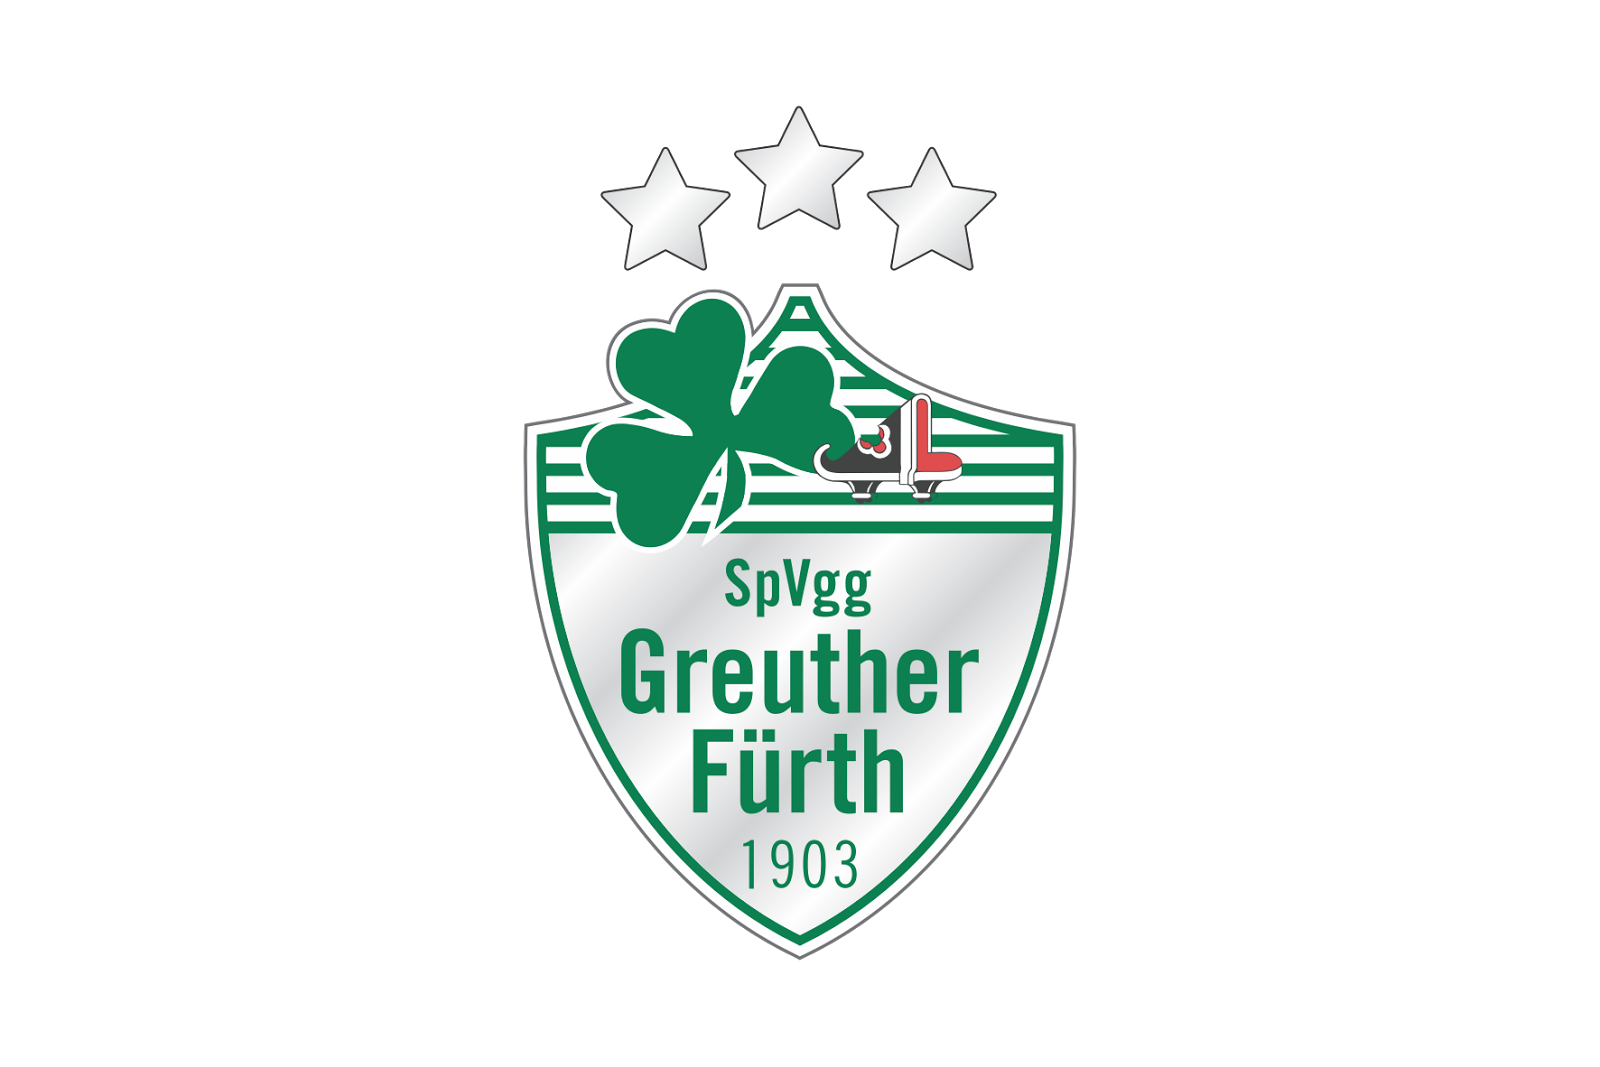 Greuther FГјrth Logo